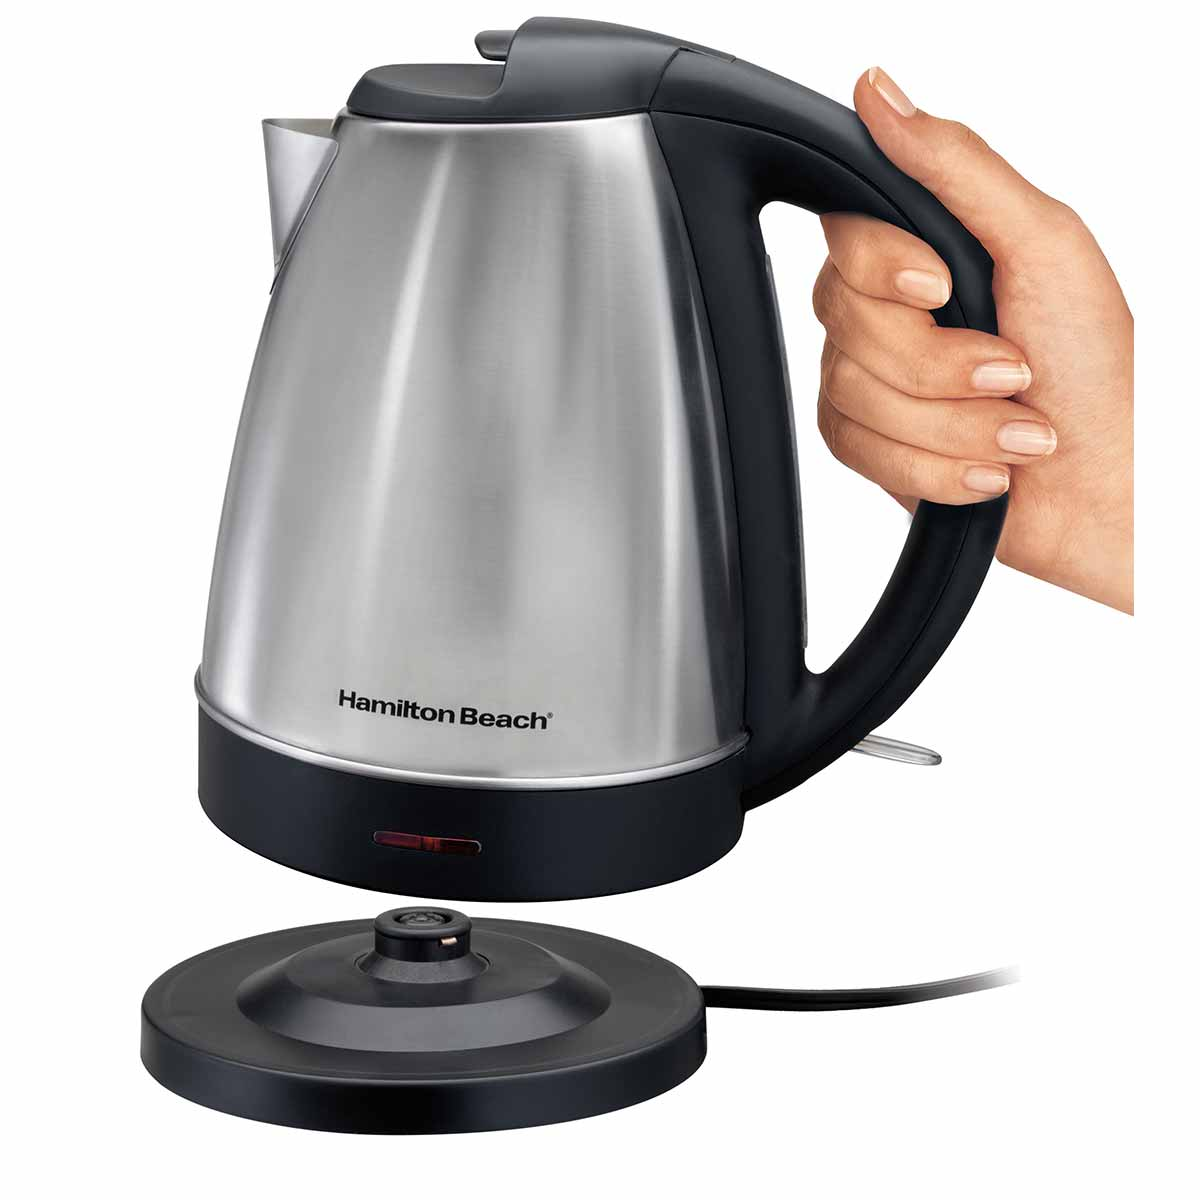 1.7 Liter Stainless Steel Electric Kettle (40989)